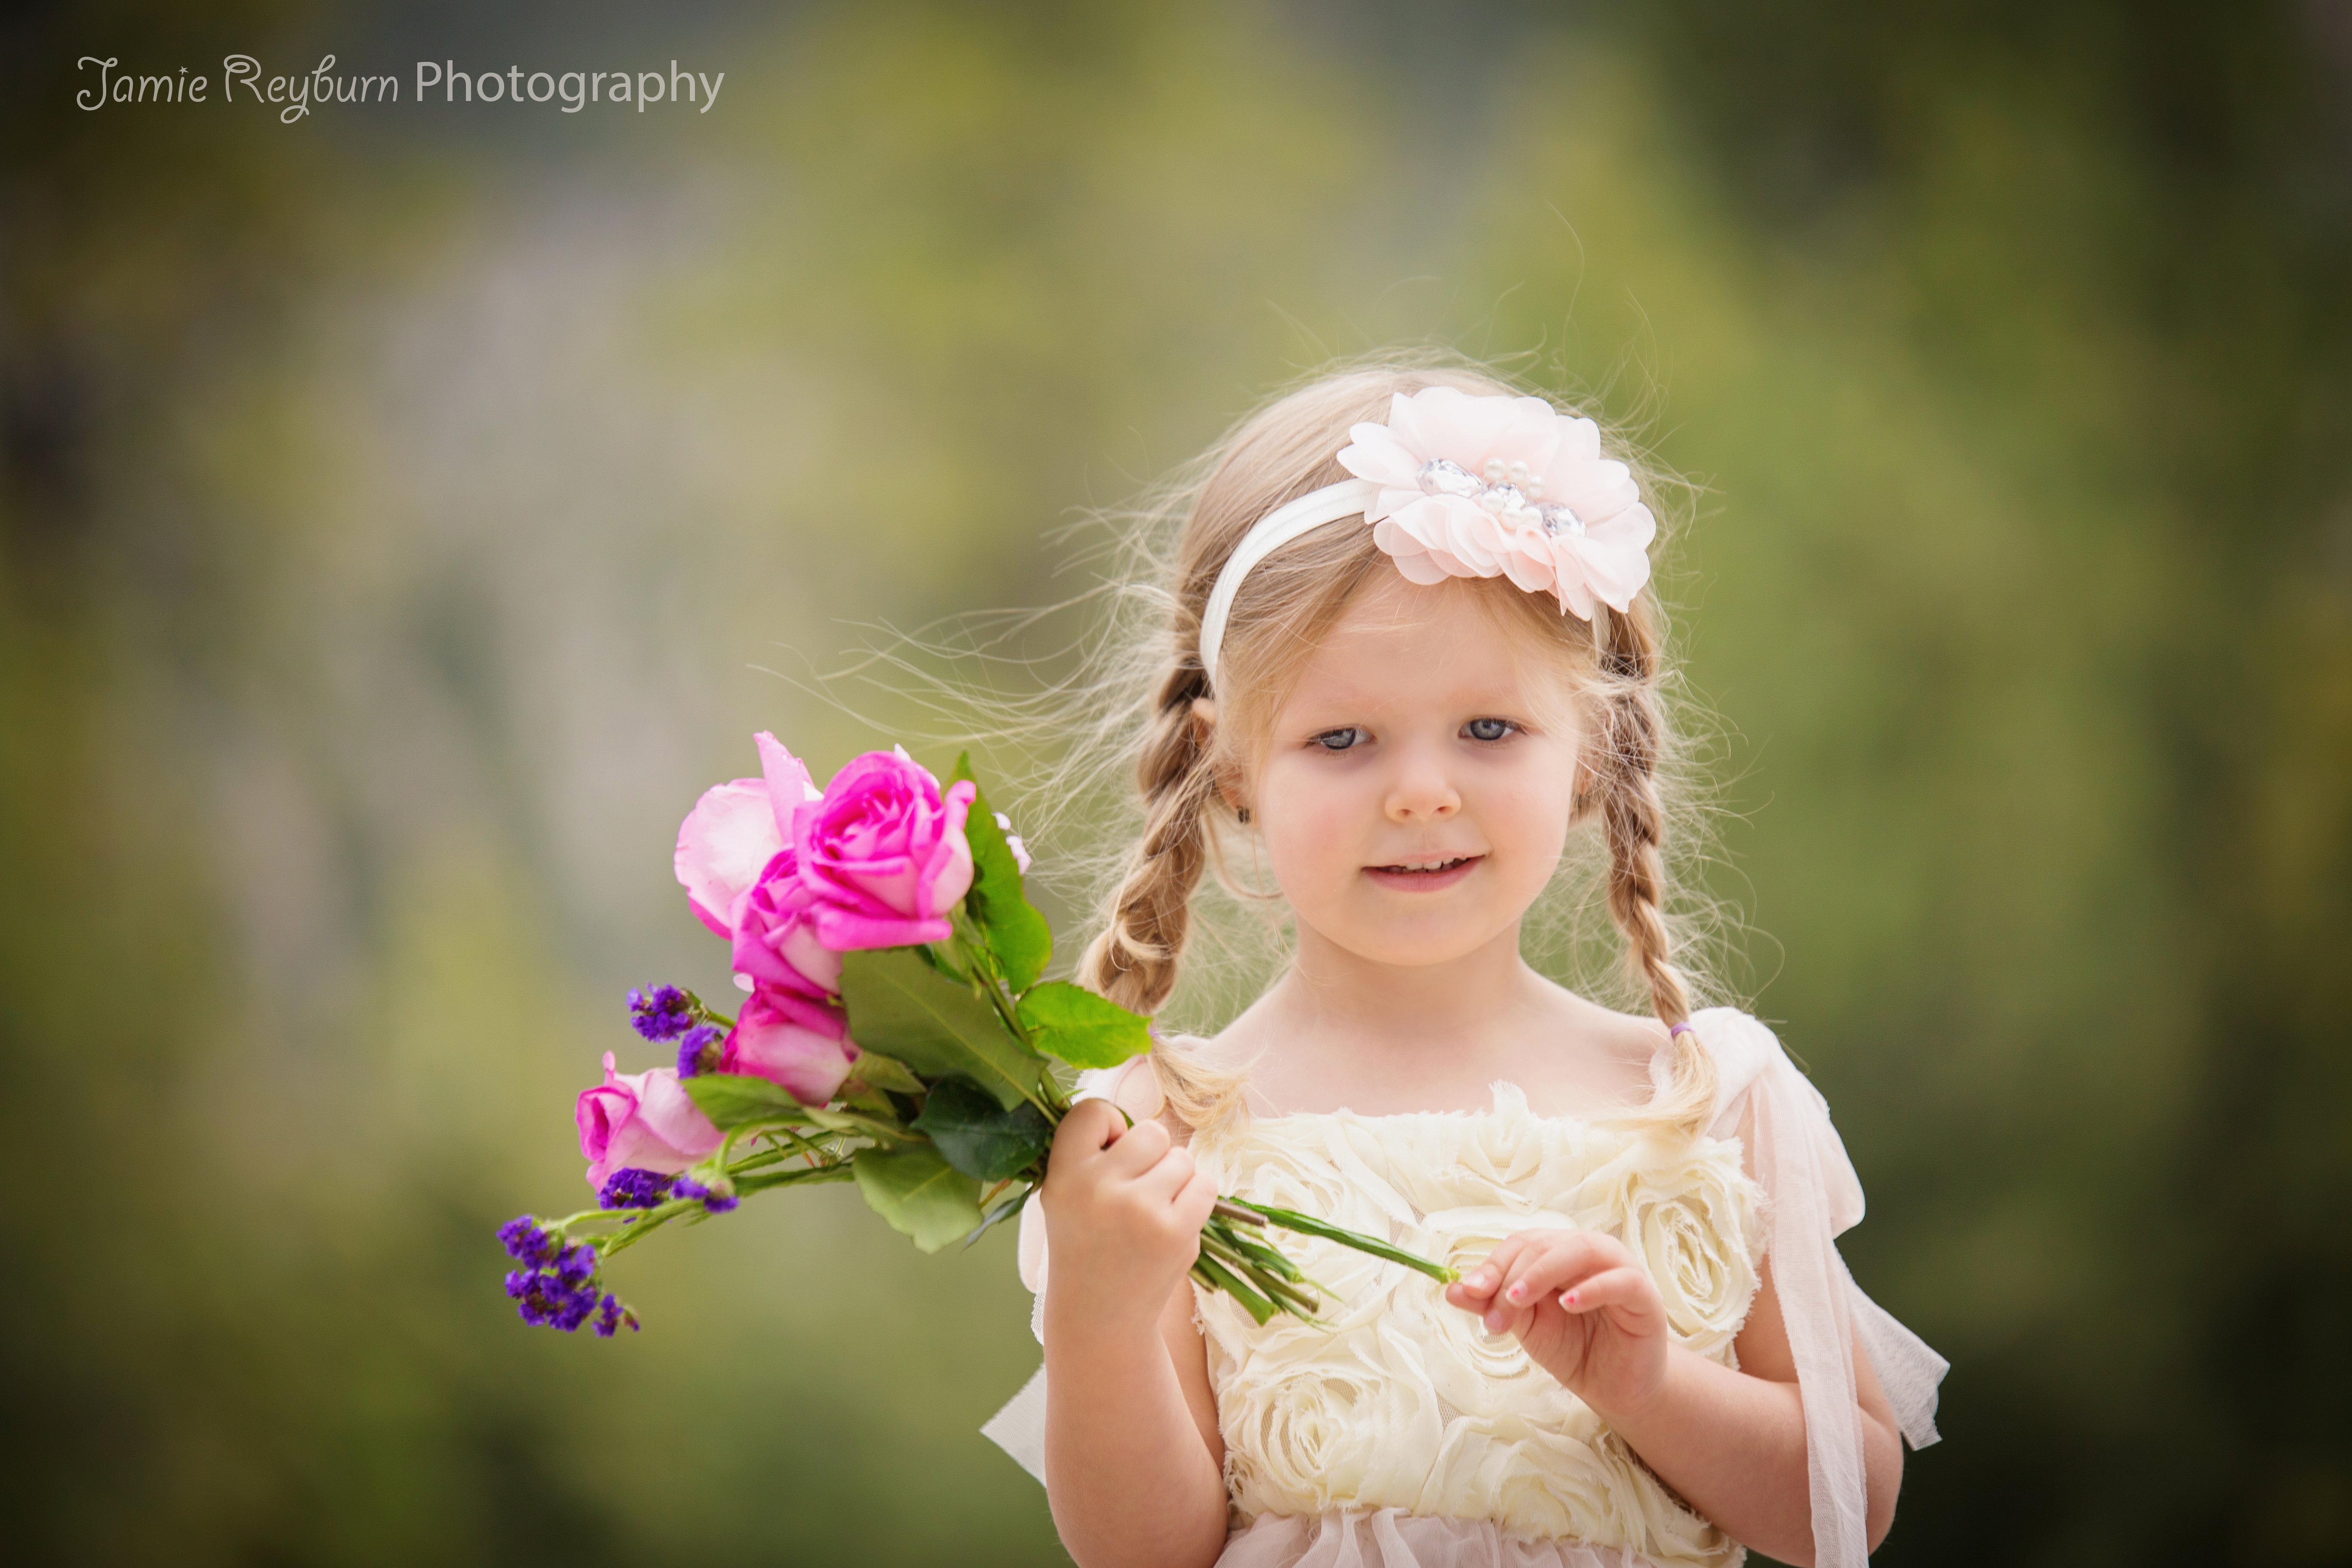 Flowergirl Mixing Manual Edits and Actions to Pop an Image Blueprints Lightroom Presets Photoshop Tips & Tutorials